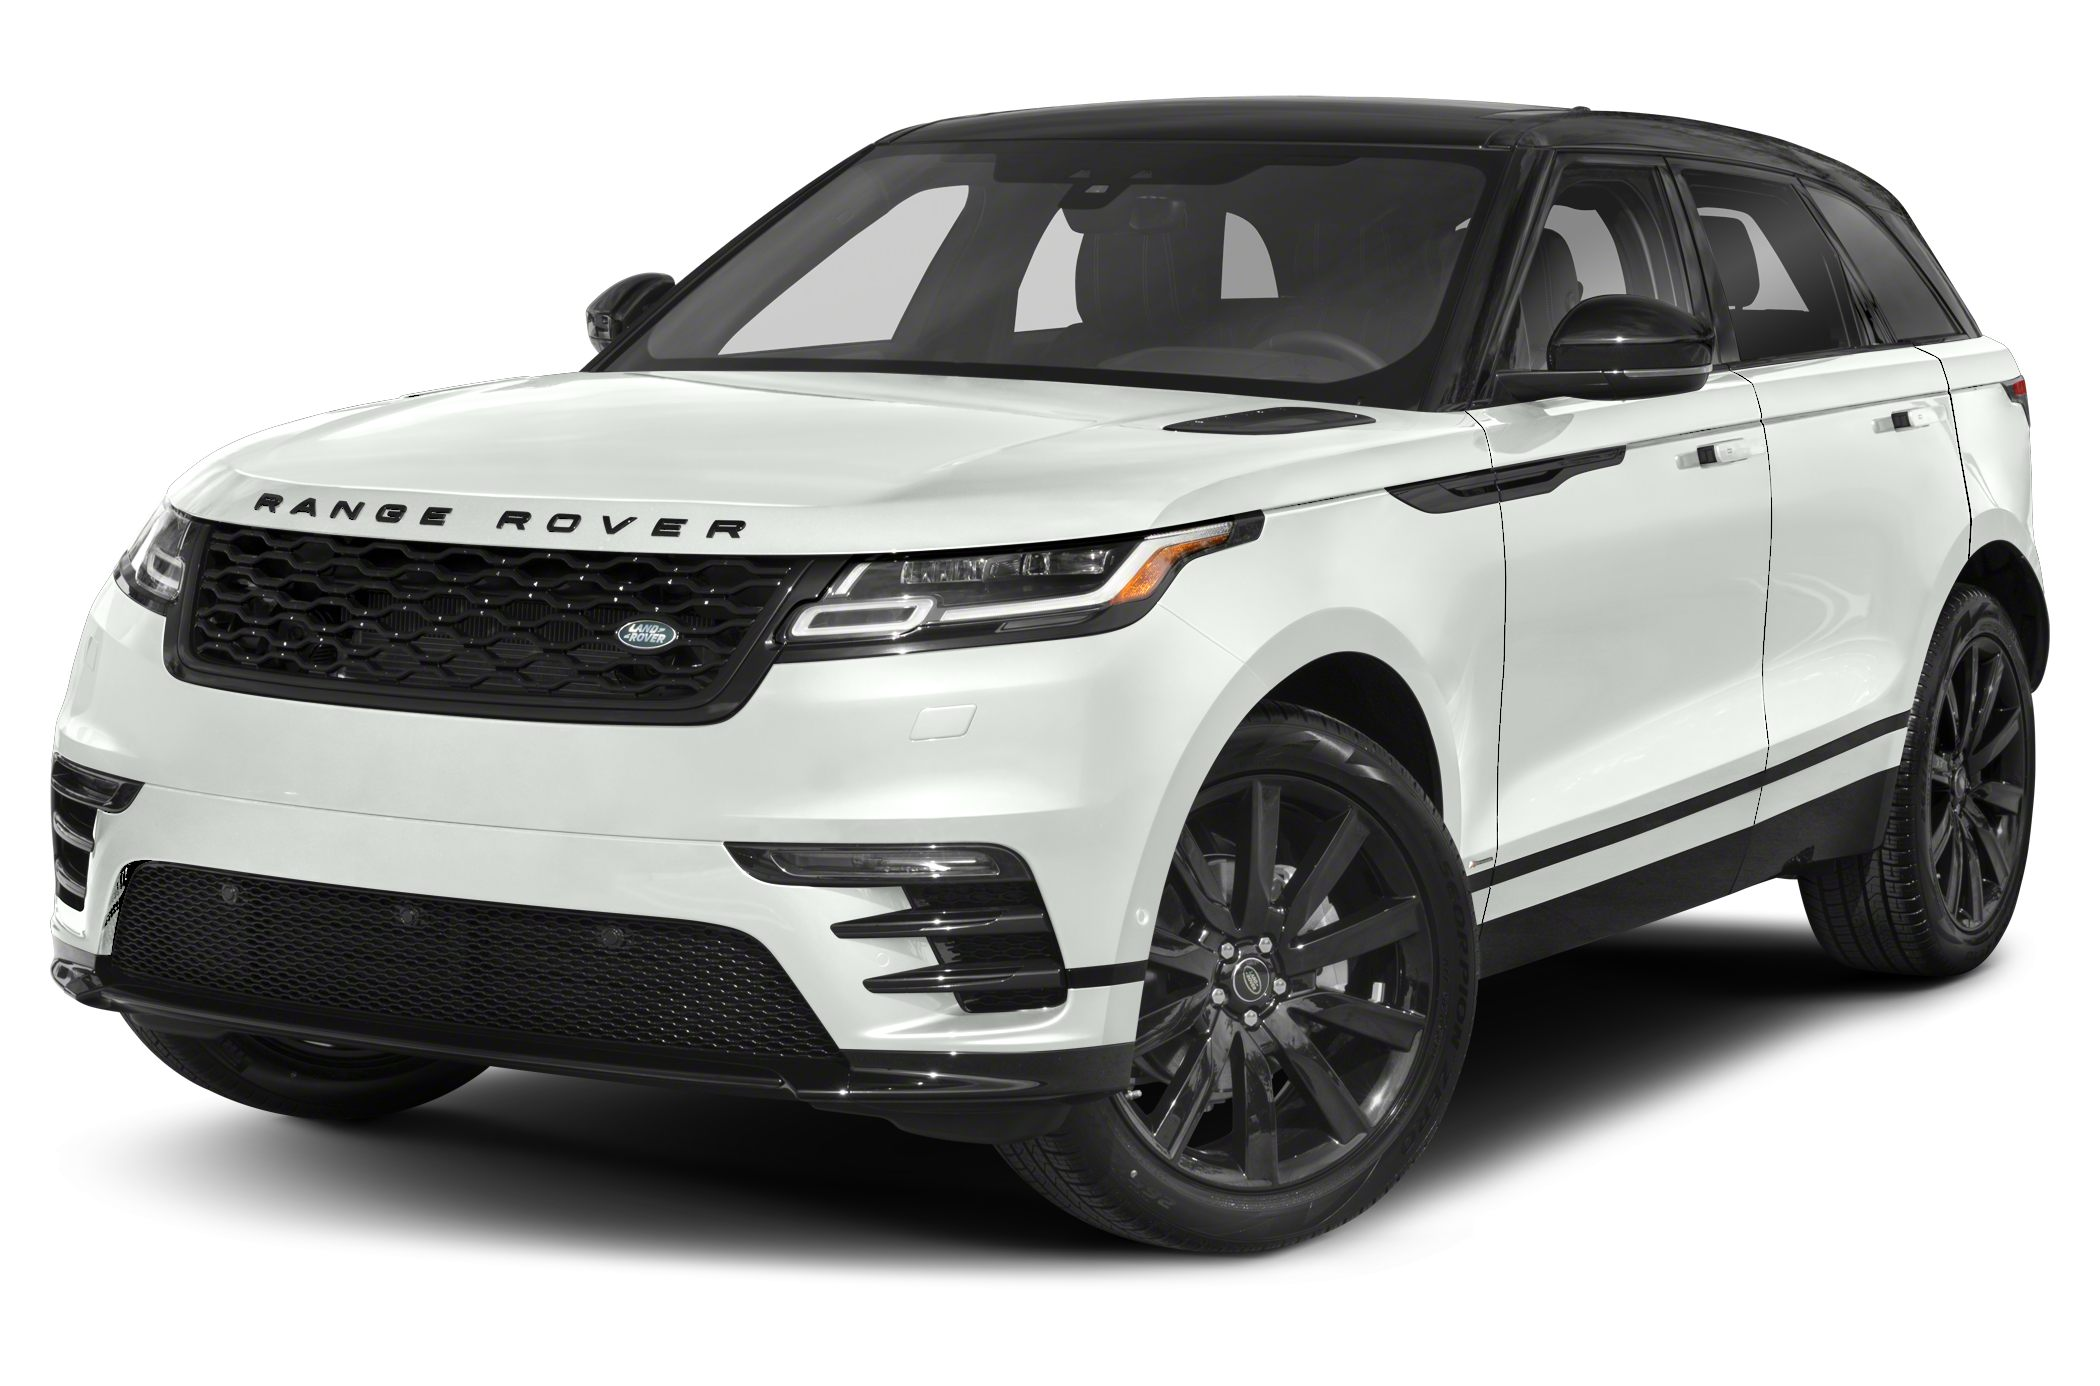 2020 Land Rover Range Rover Sport: Changes, Equipment, Price >> 2020 Land Rover Range Rover Velar P340 S 4dr 4x4 Pricing And Options